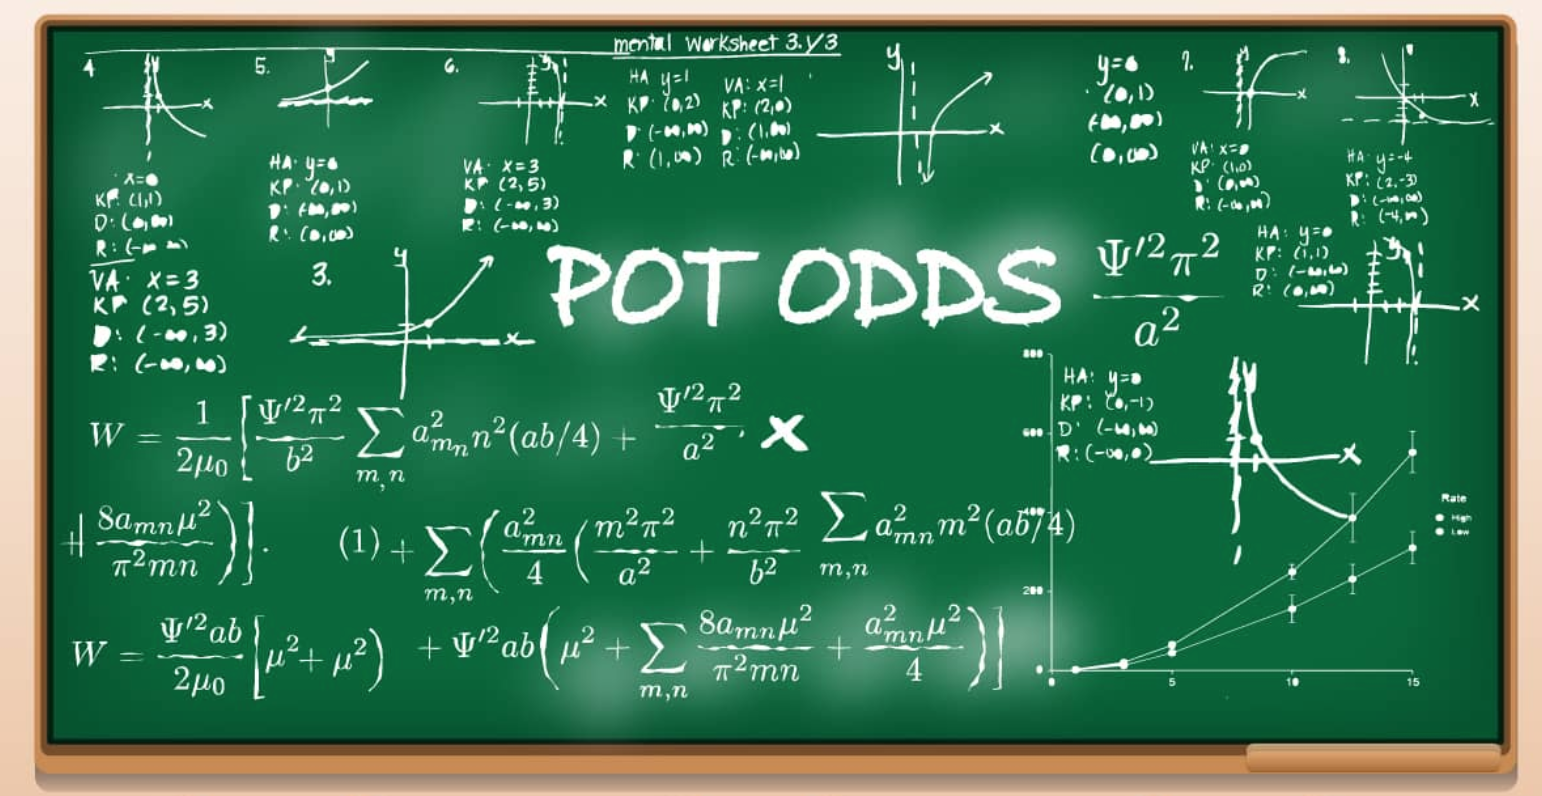 Implied Pot Odds